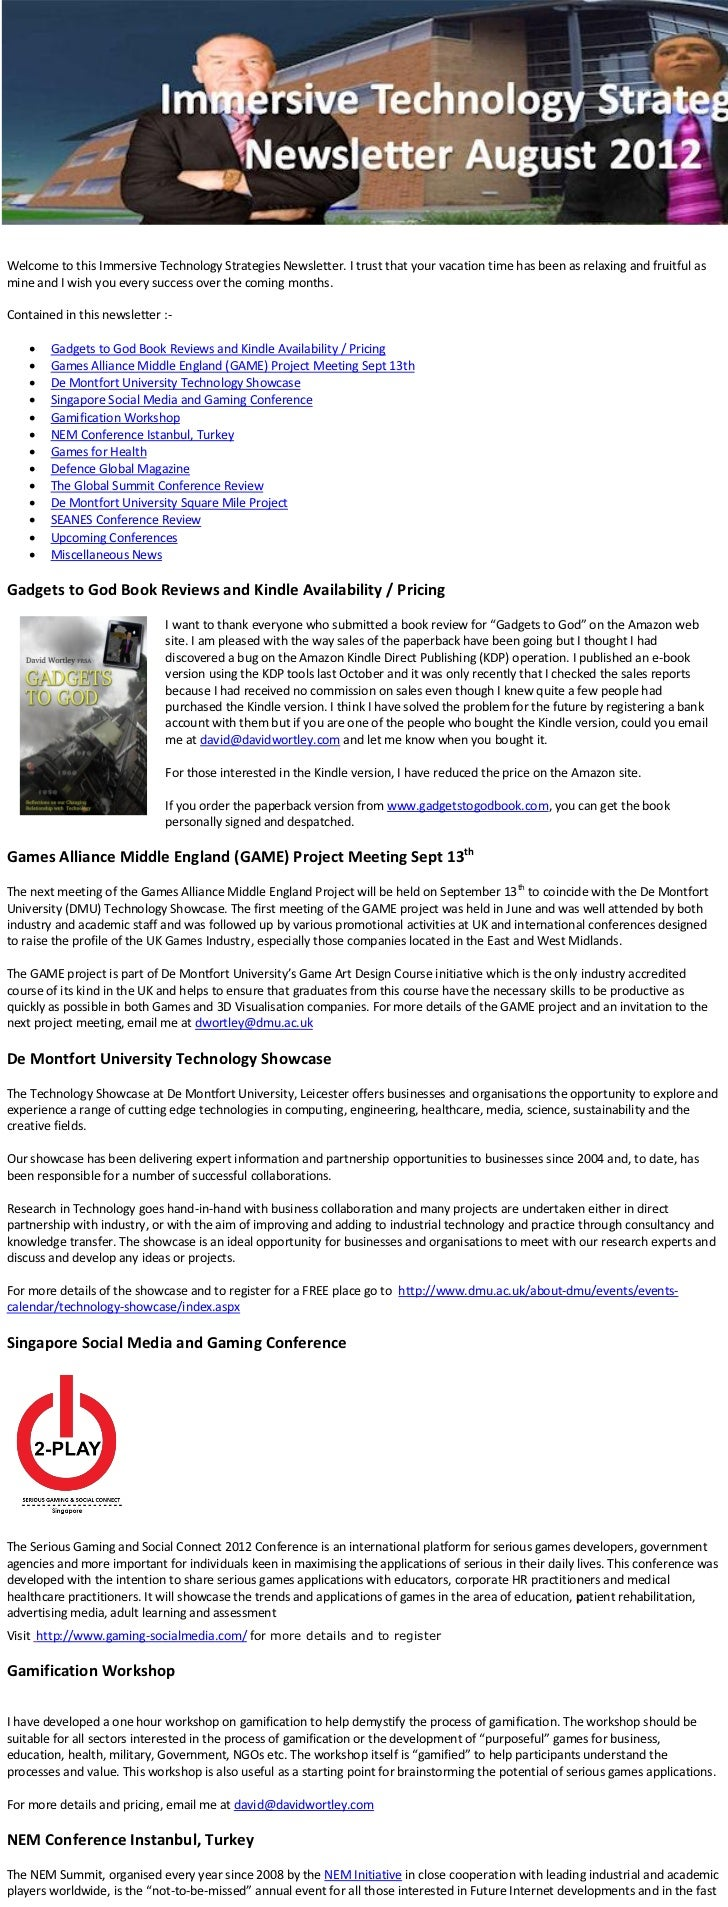 Welcome to this Immersive Technology Strategies Newsletter. I trust that your vacation time has been as relaxing and fruit...